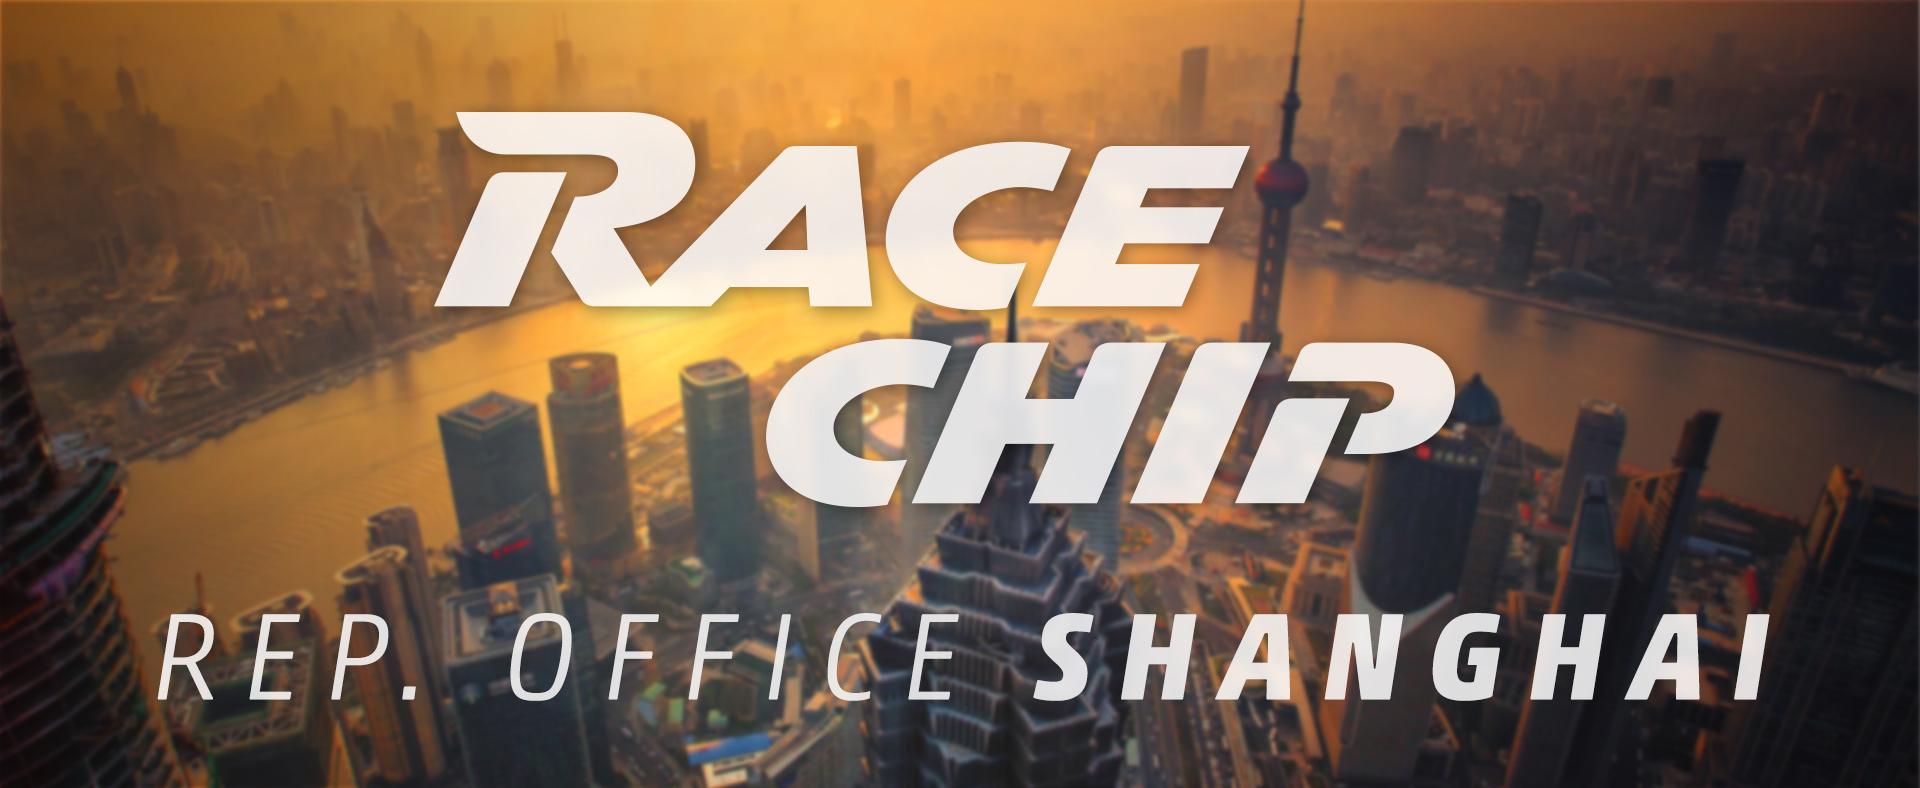 RaceChip Rep. Office in Shanghai